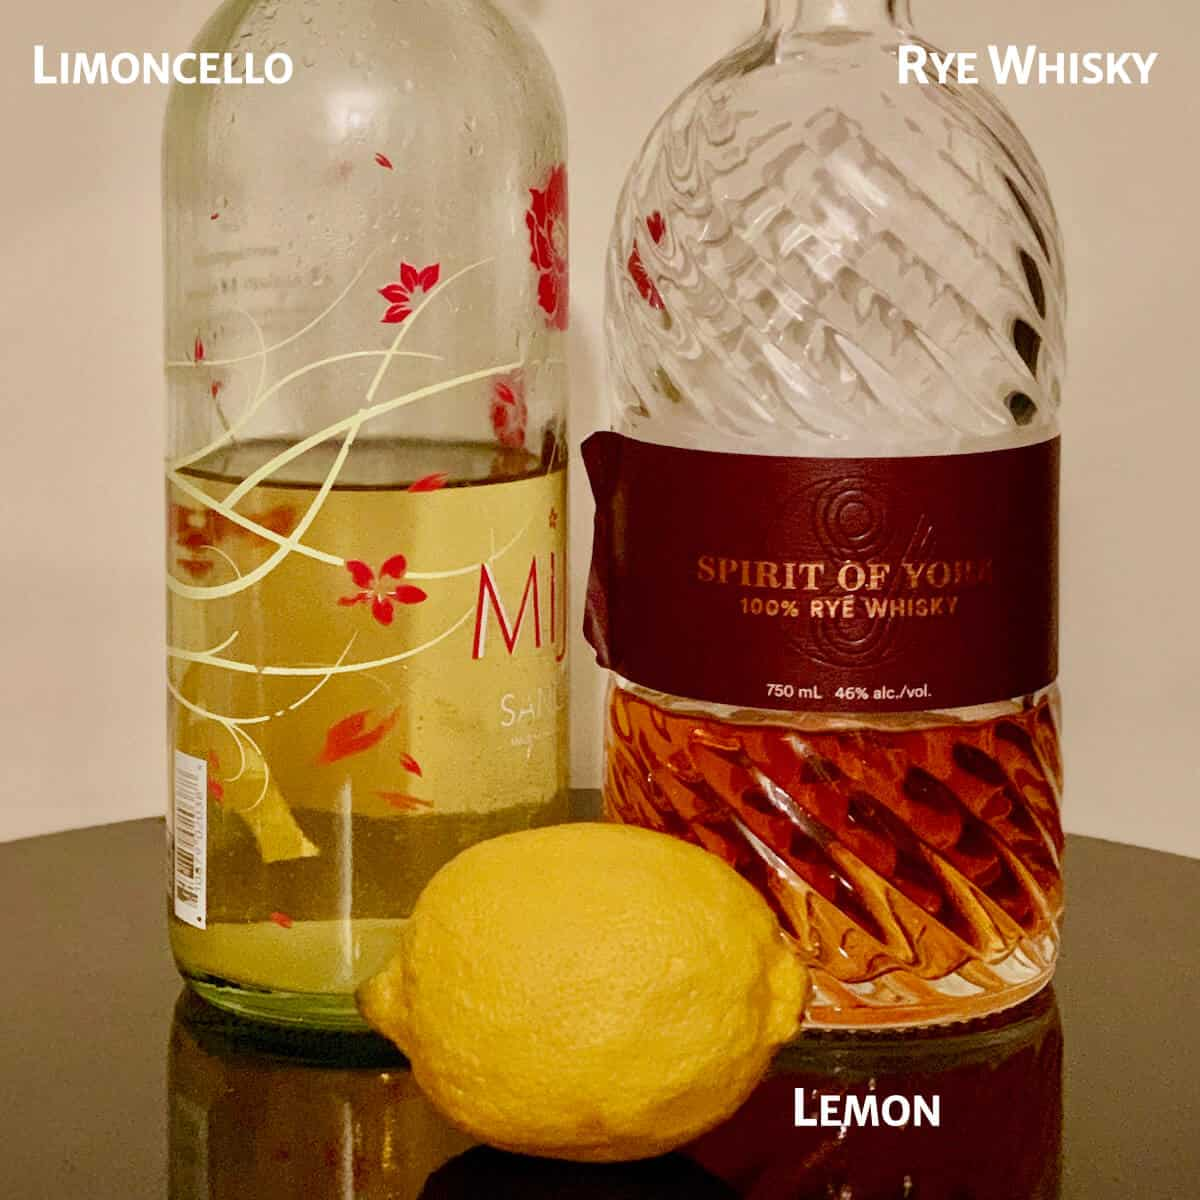 Limoncello Rye Sour ingredients - Homemade Limoncello & Spirit of York Rye Whiskey in bottles with a lemon